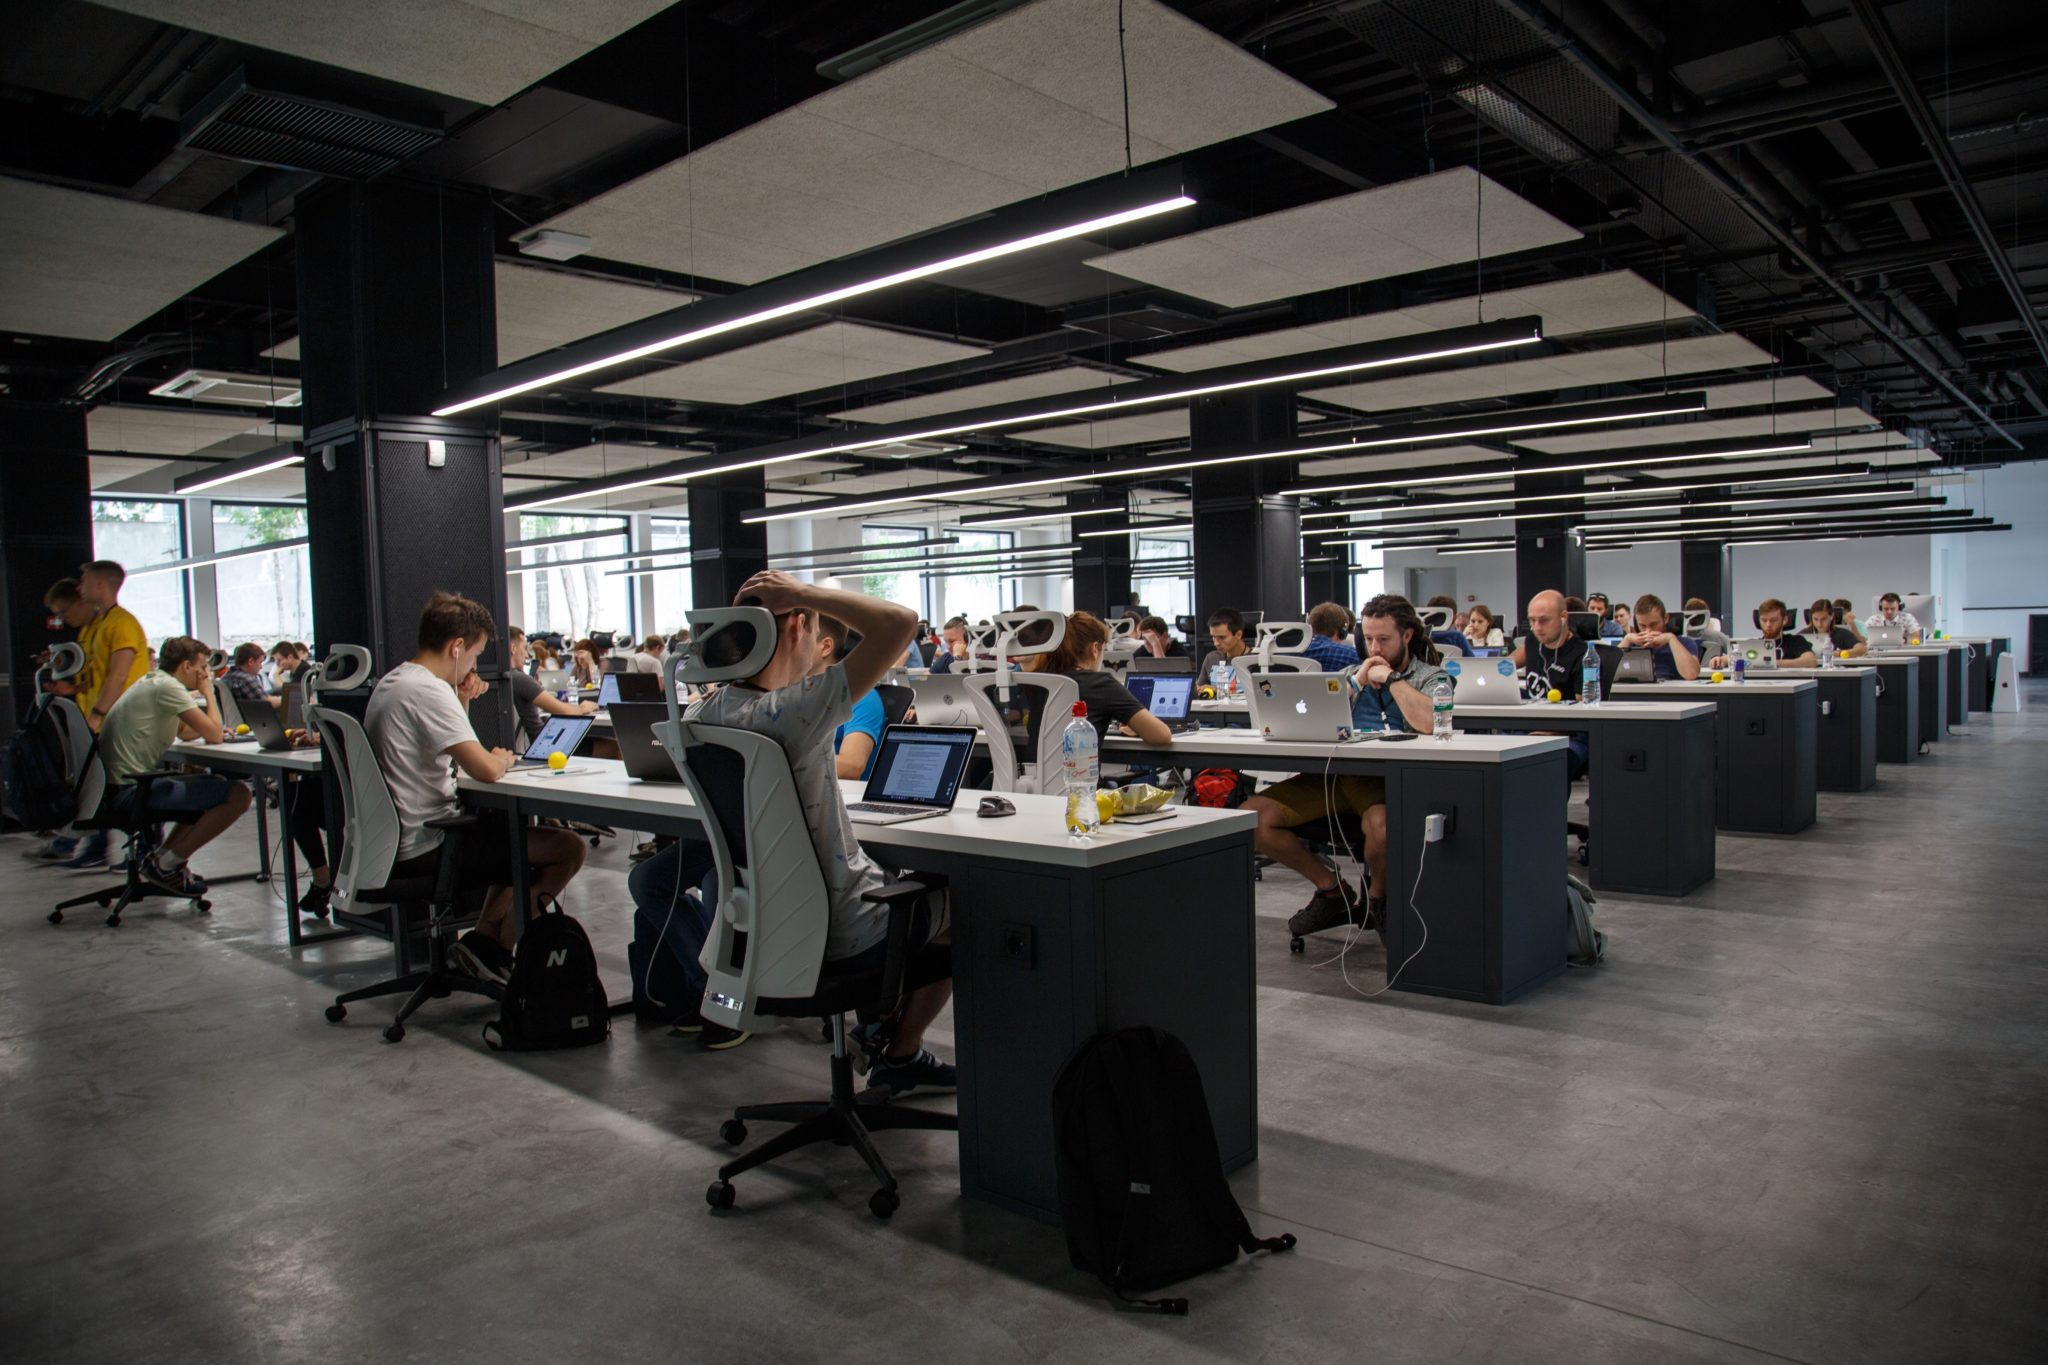 group of people at computers in large room